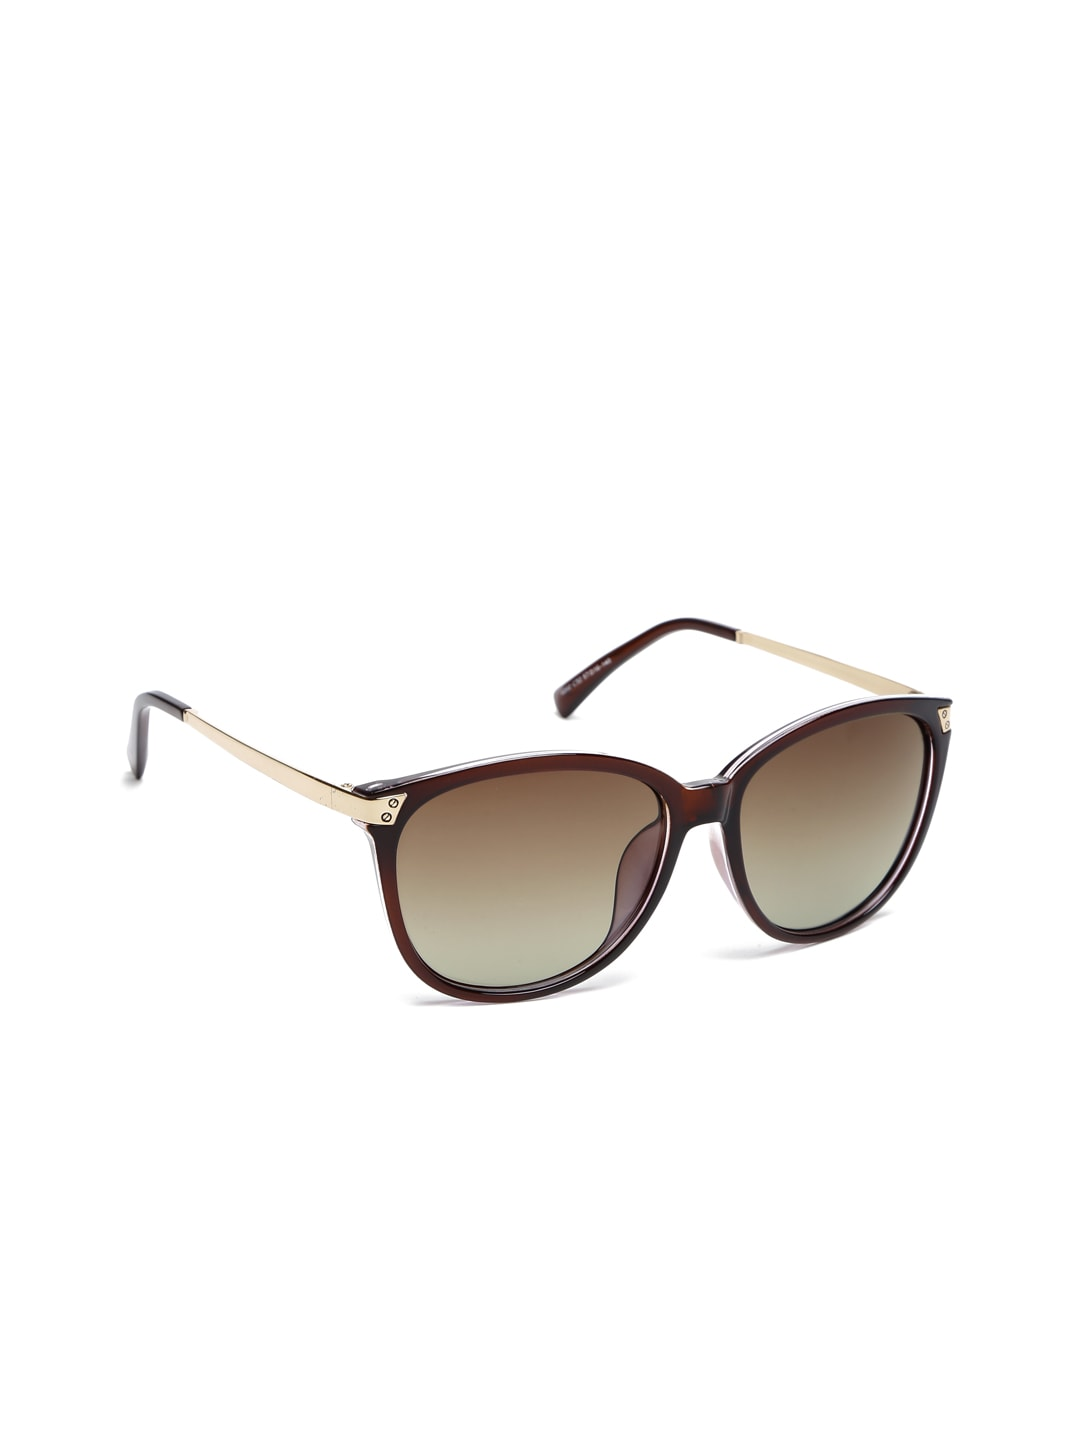 DressBerry Women Oval Sunglasses MFB-PN-TSD-6202-2